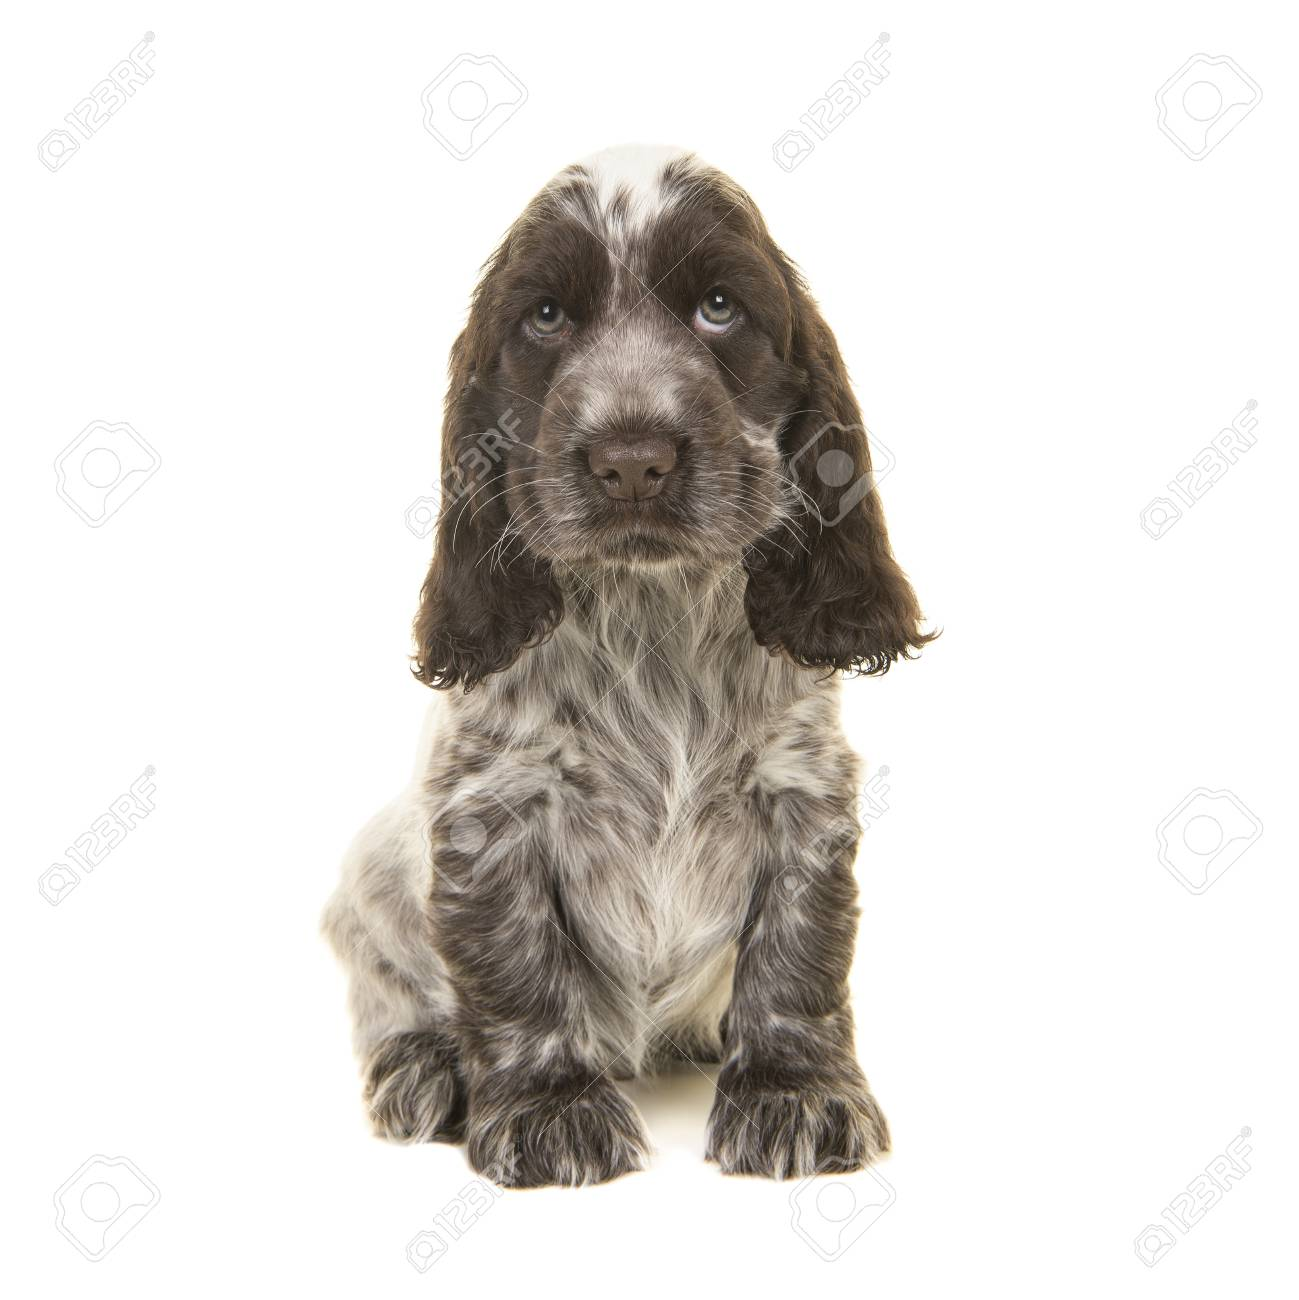 Cute Chocolate And White English Cocker Spaniel Puppy Dog Sitting Stock Photo Picture And Royalty Free Image Image 89119198